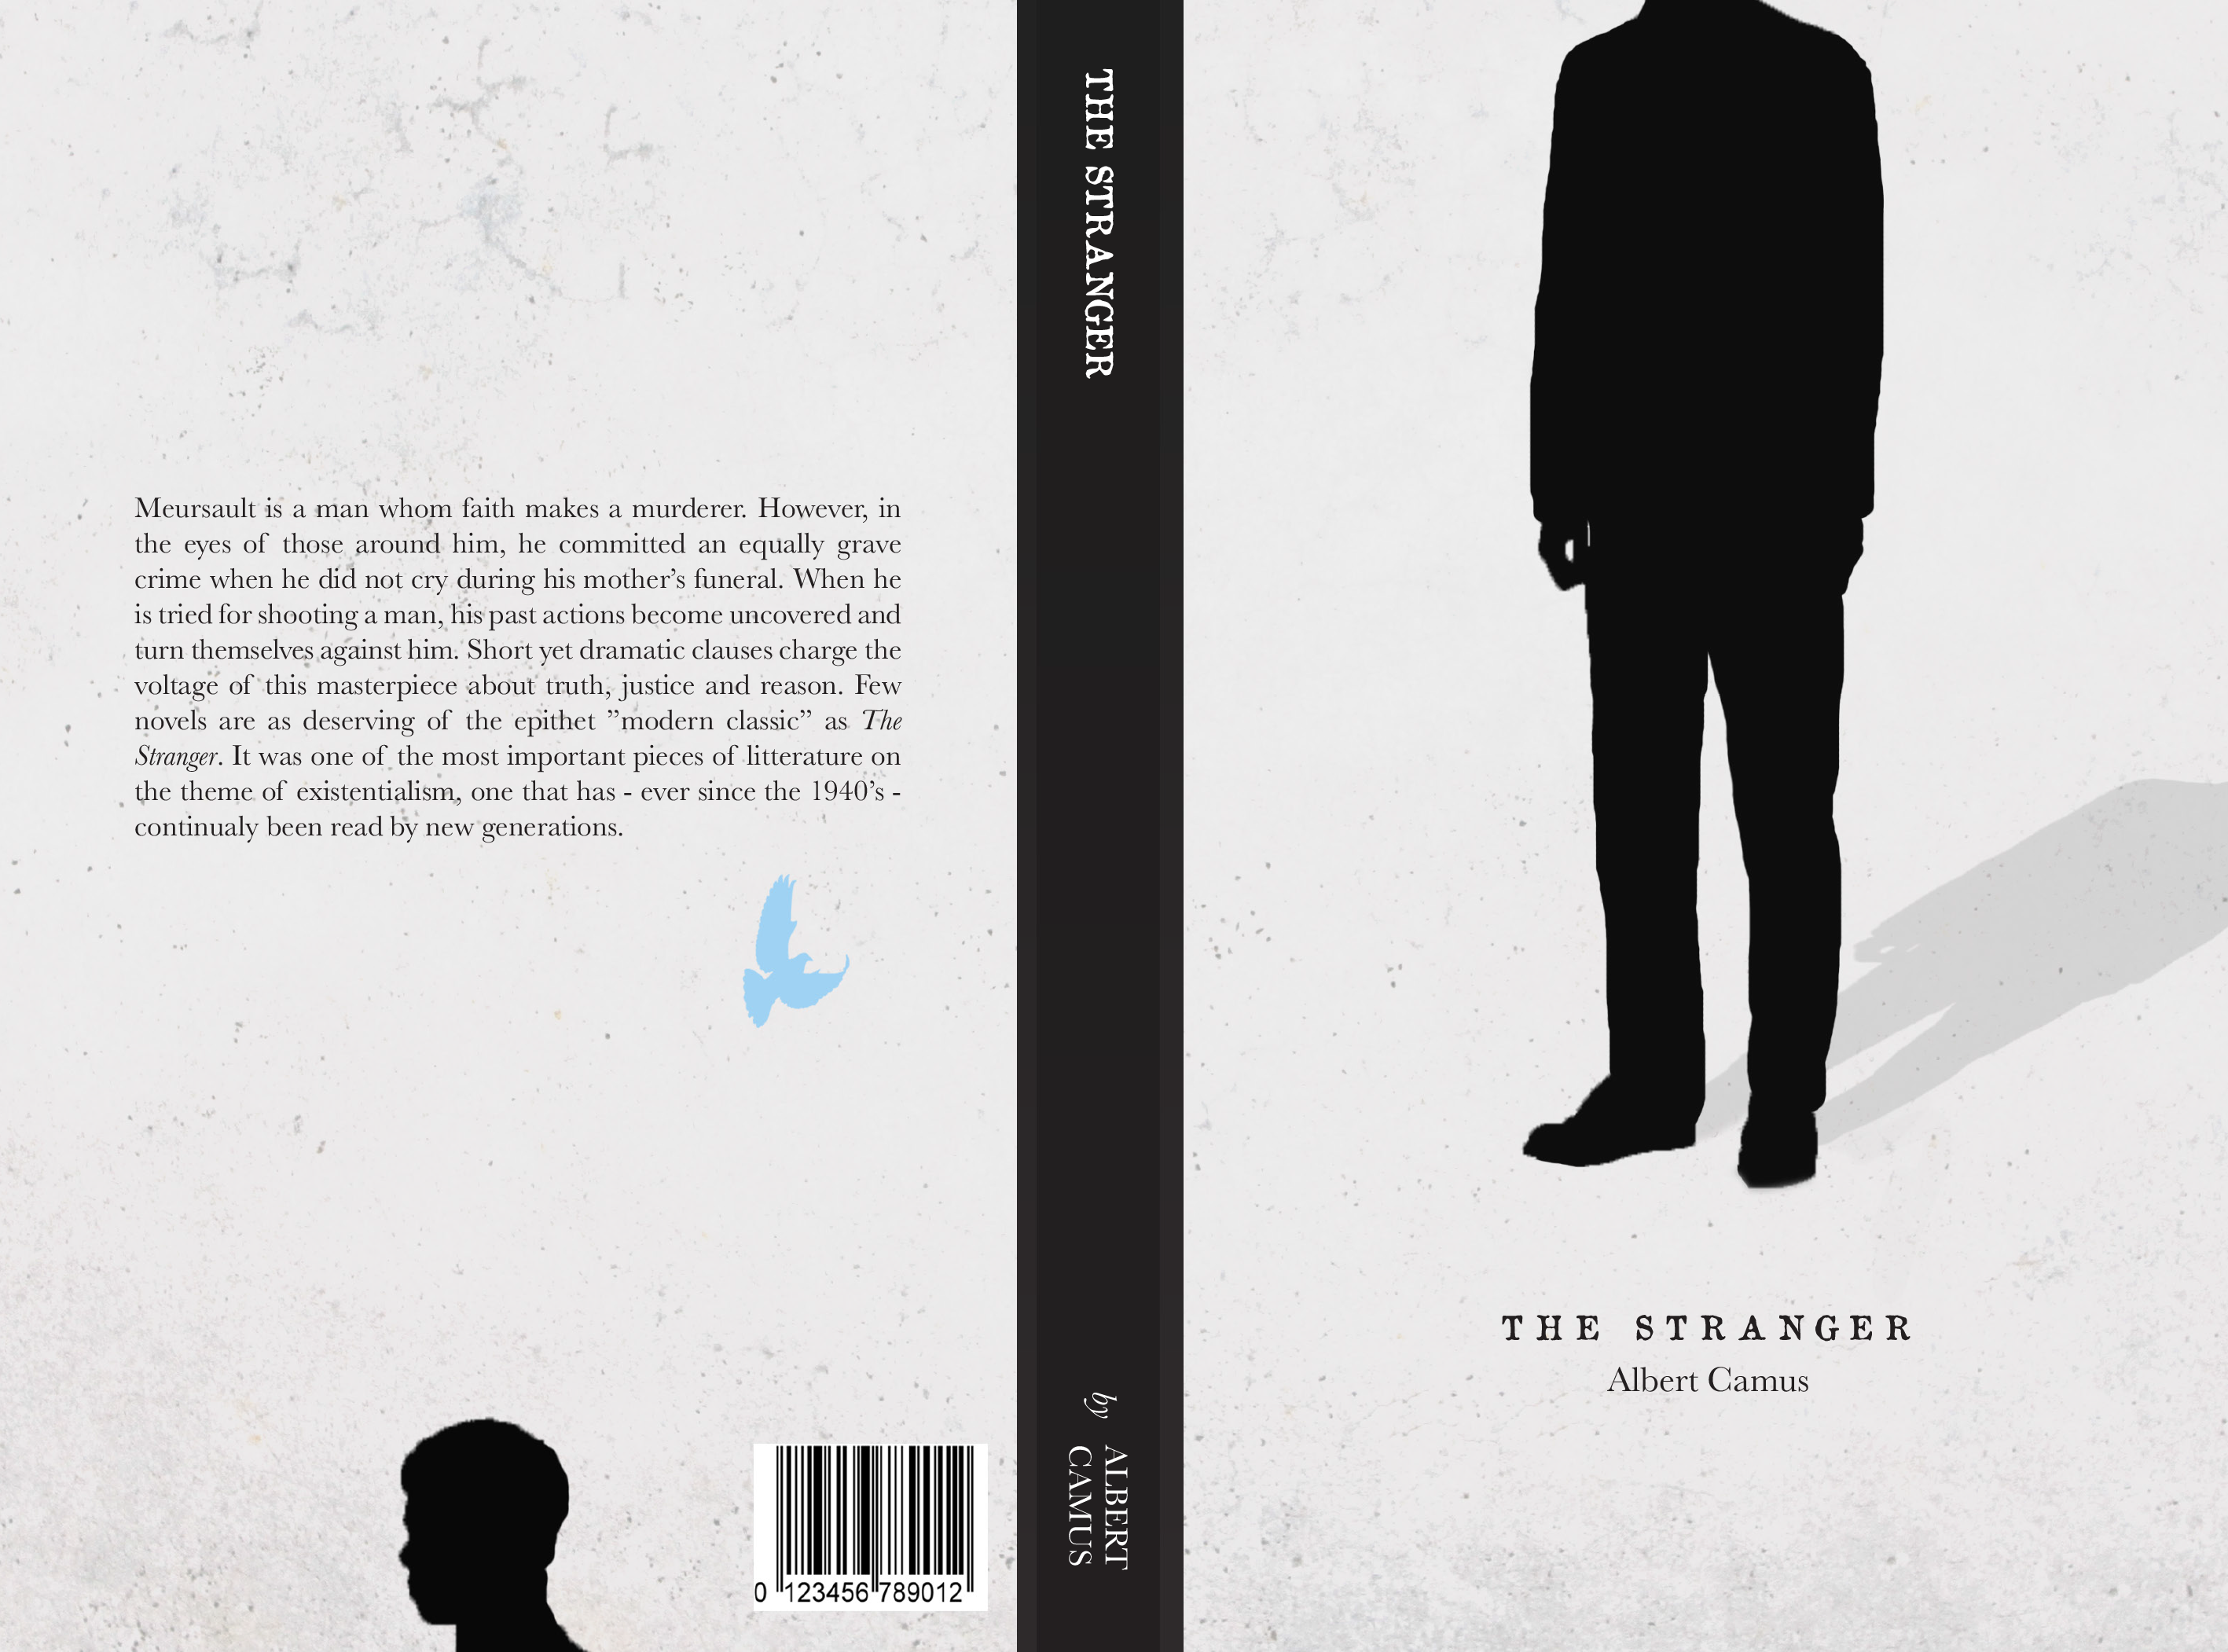 the stranger albert camus essay albert camus essay modern classics  best images about the stranger book cover variations on book cover for the stranger l eacutetranger